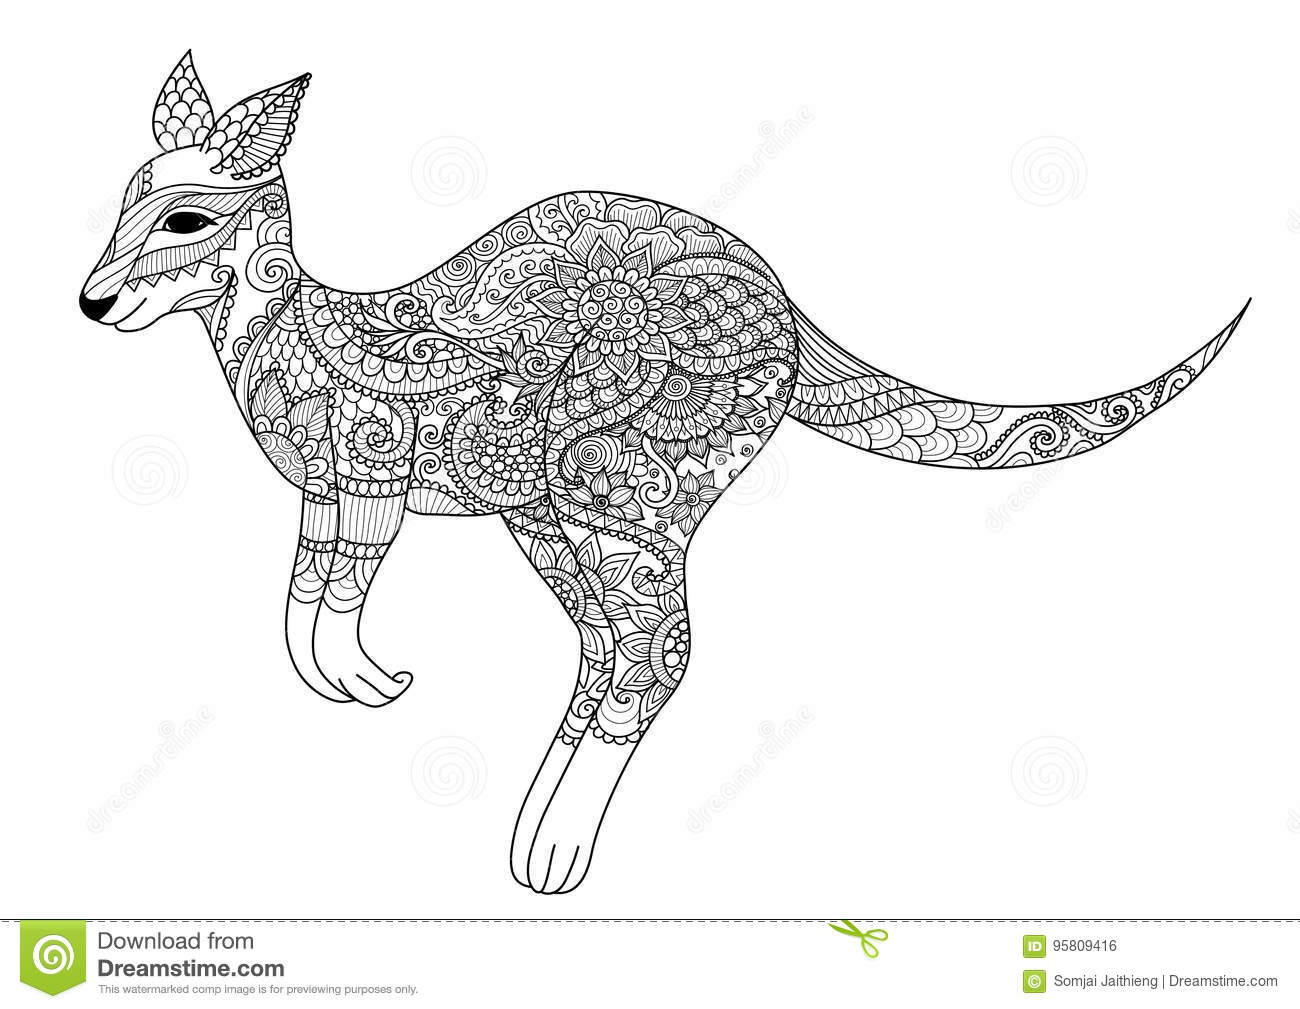 Silhouette Of A Kangaroo With Australian Designs Vector